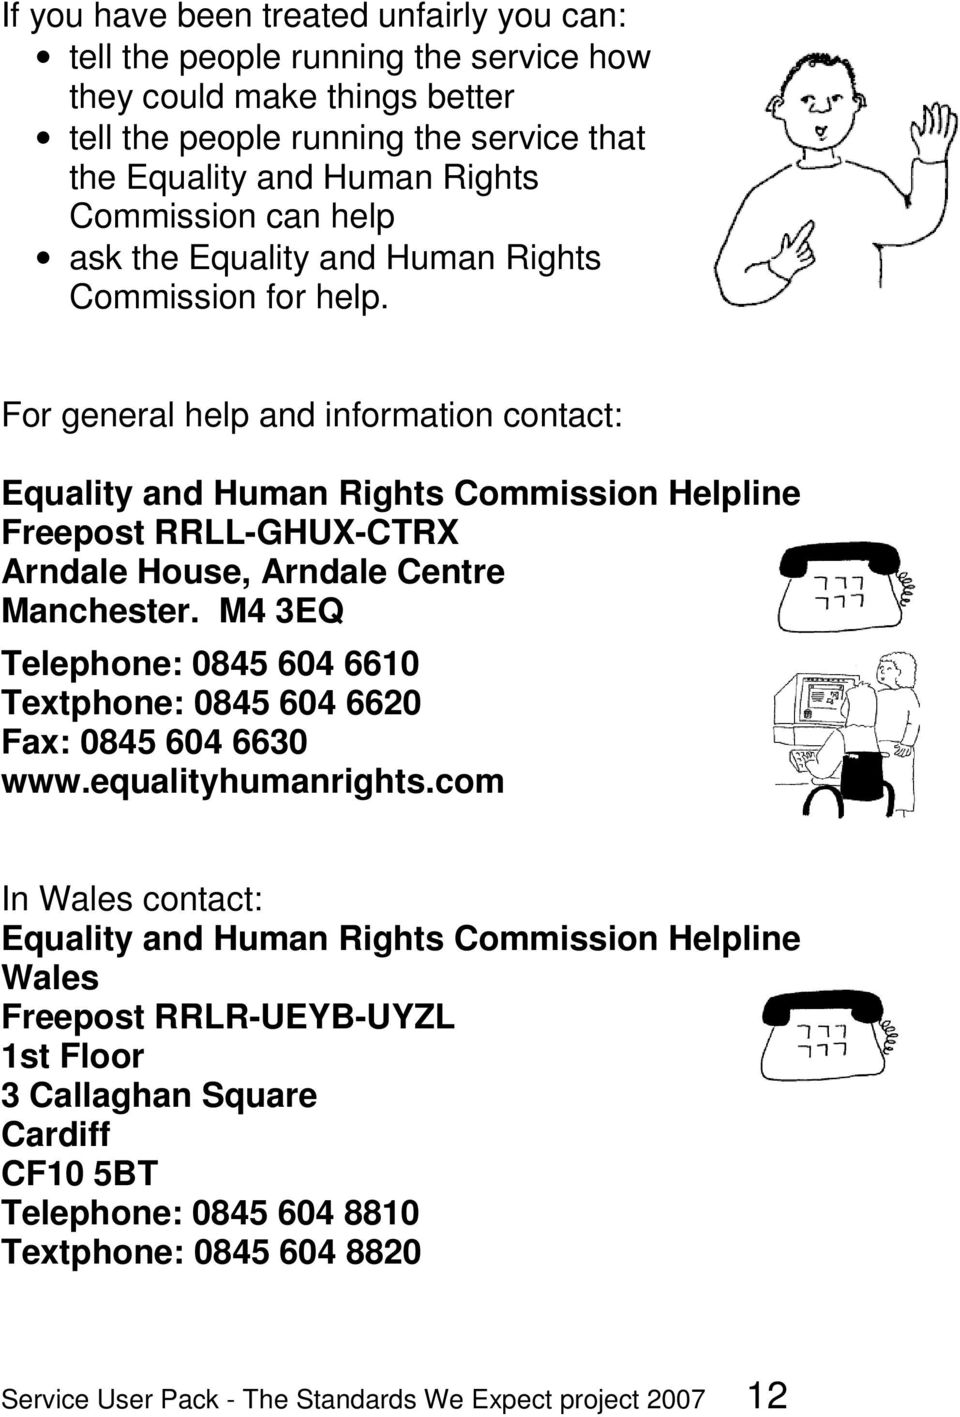 For general help and information contact: Equality and Human Rights Commission Helpline Freepost RRLL-GHUX-CTRX Arndale House, Arndale Centre Manchester.